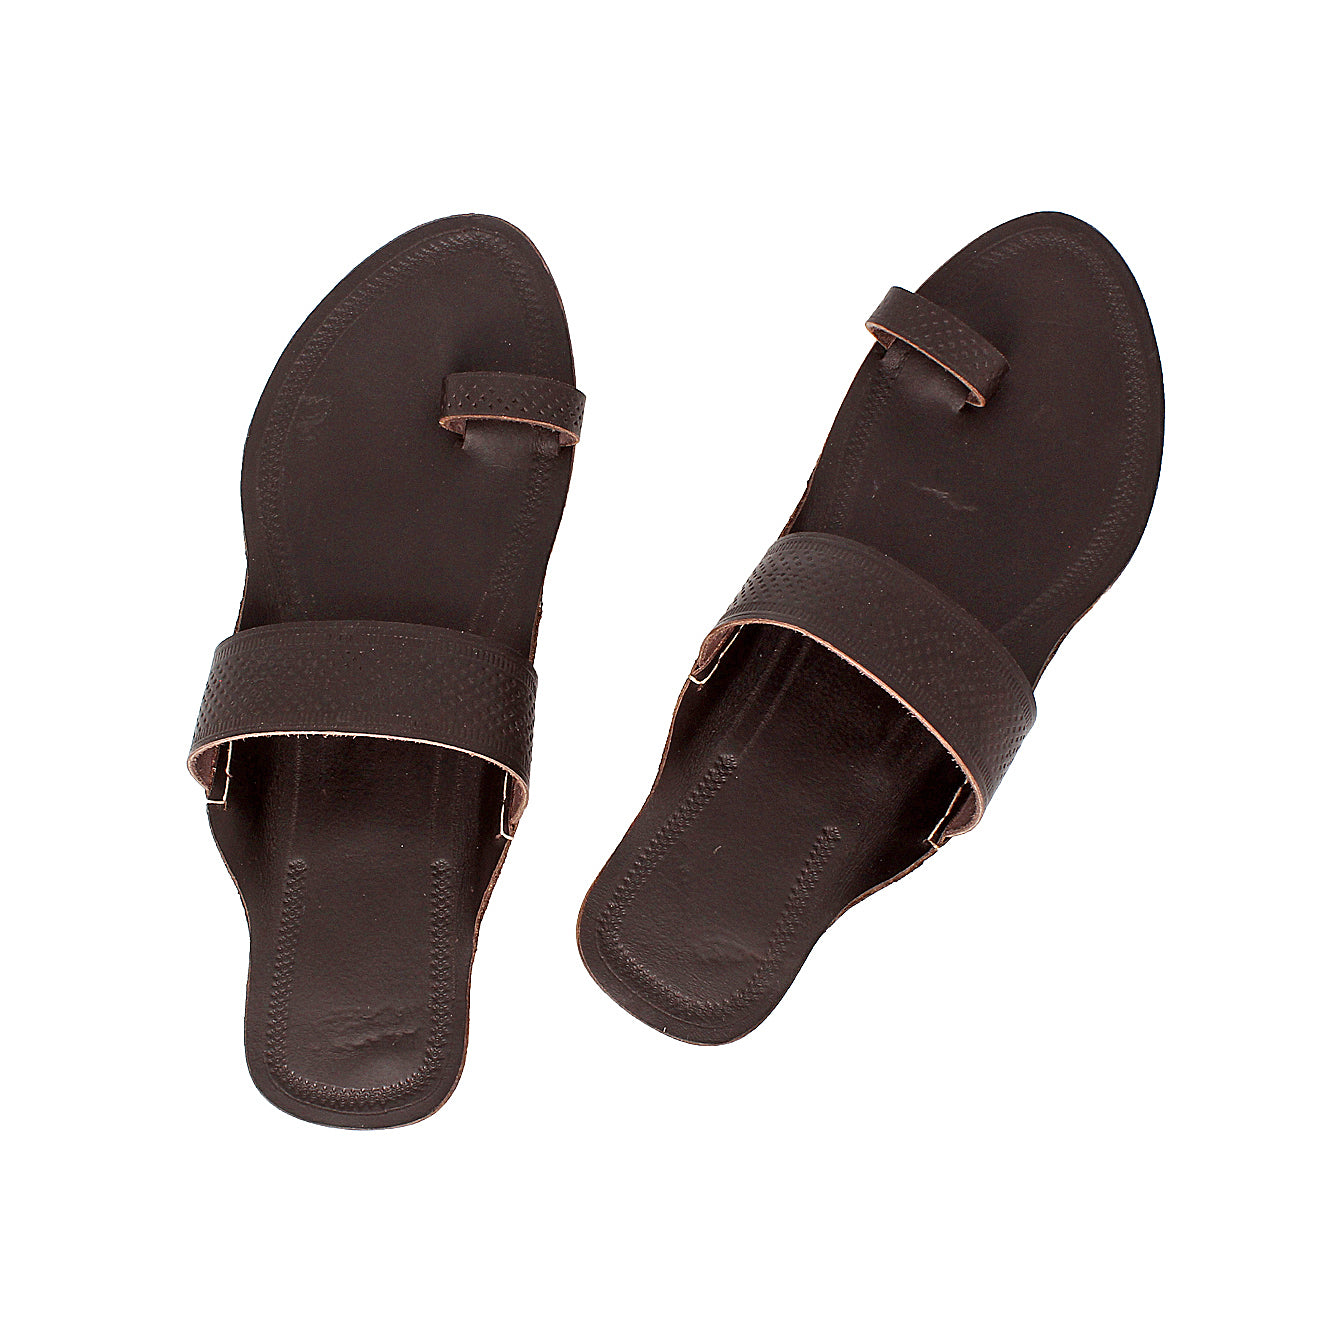 Simple and Sweat Dark Brown Handmade Indian Ethnic Flip Flop Sandal for Ladies KRKA-P-W-225